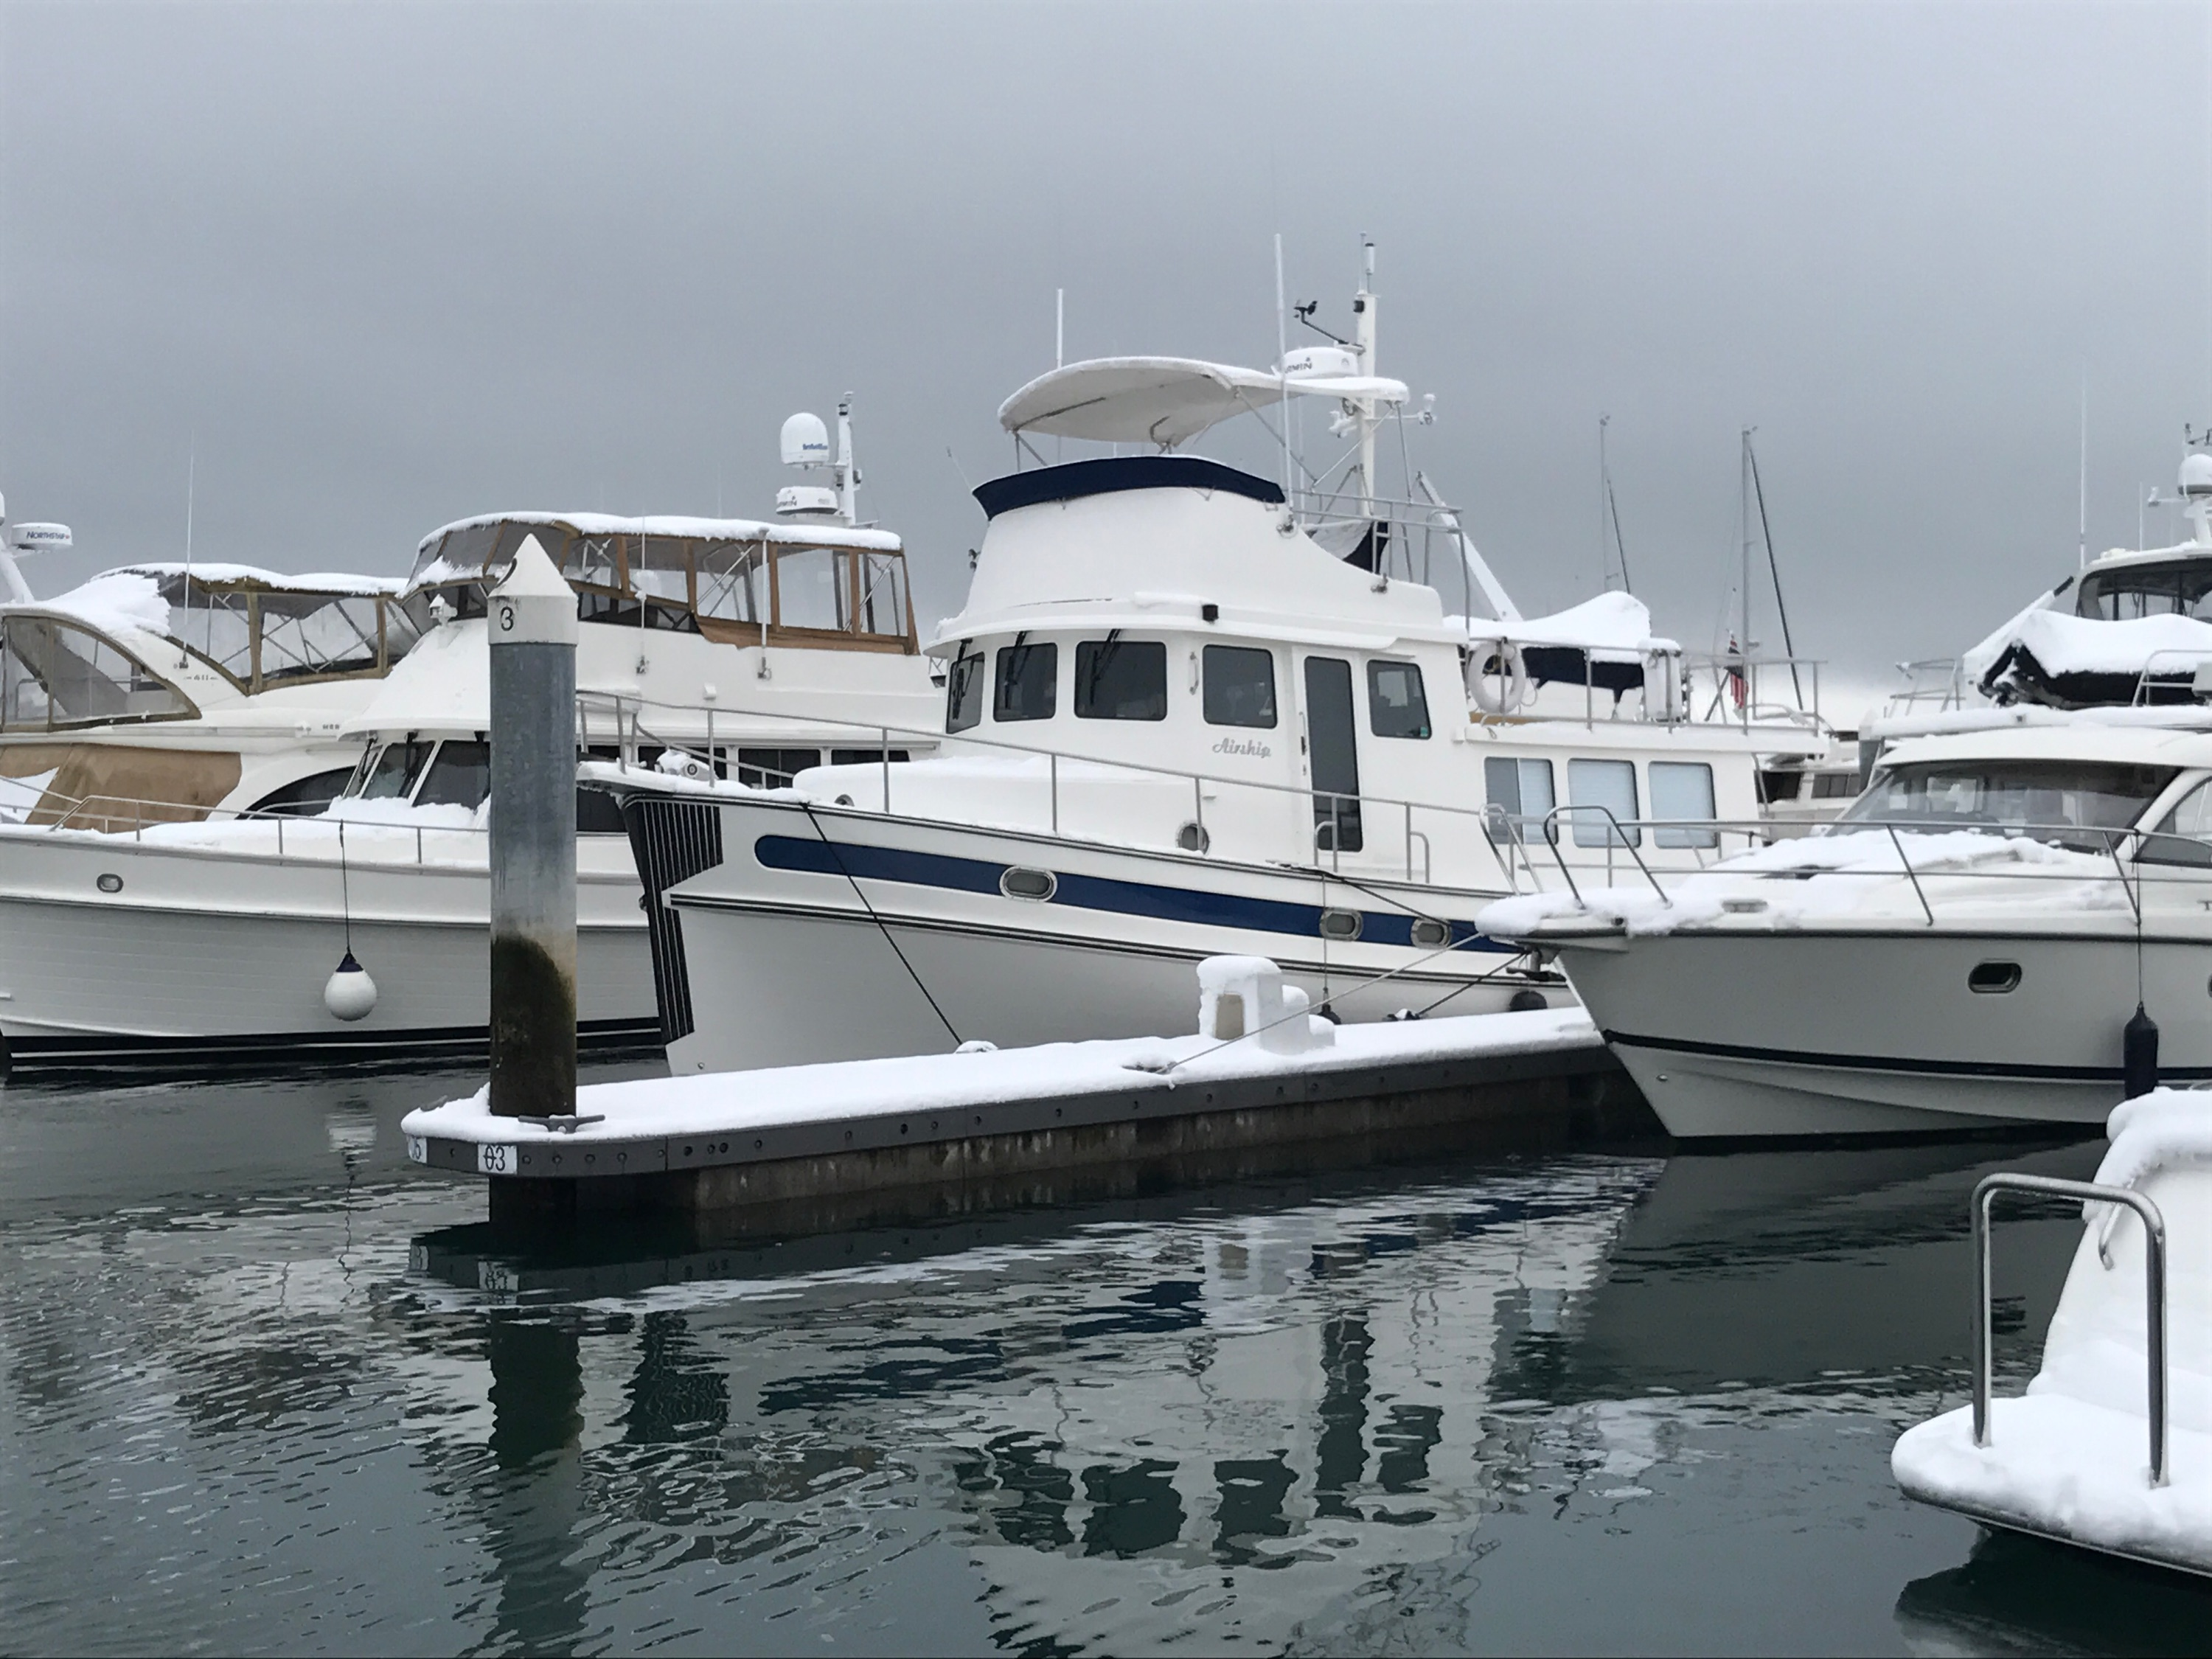 Catching Up | Seattle Boat Show, Snowpocalypse, and the